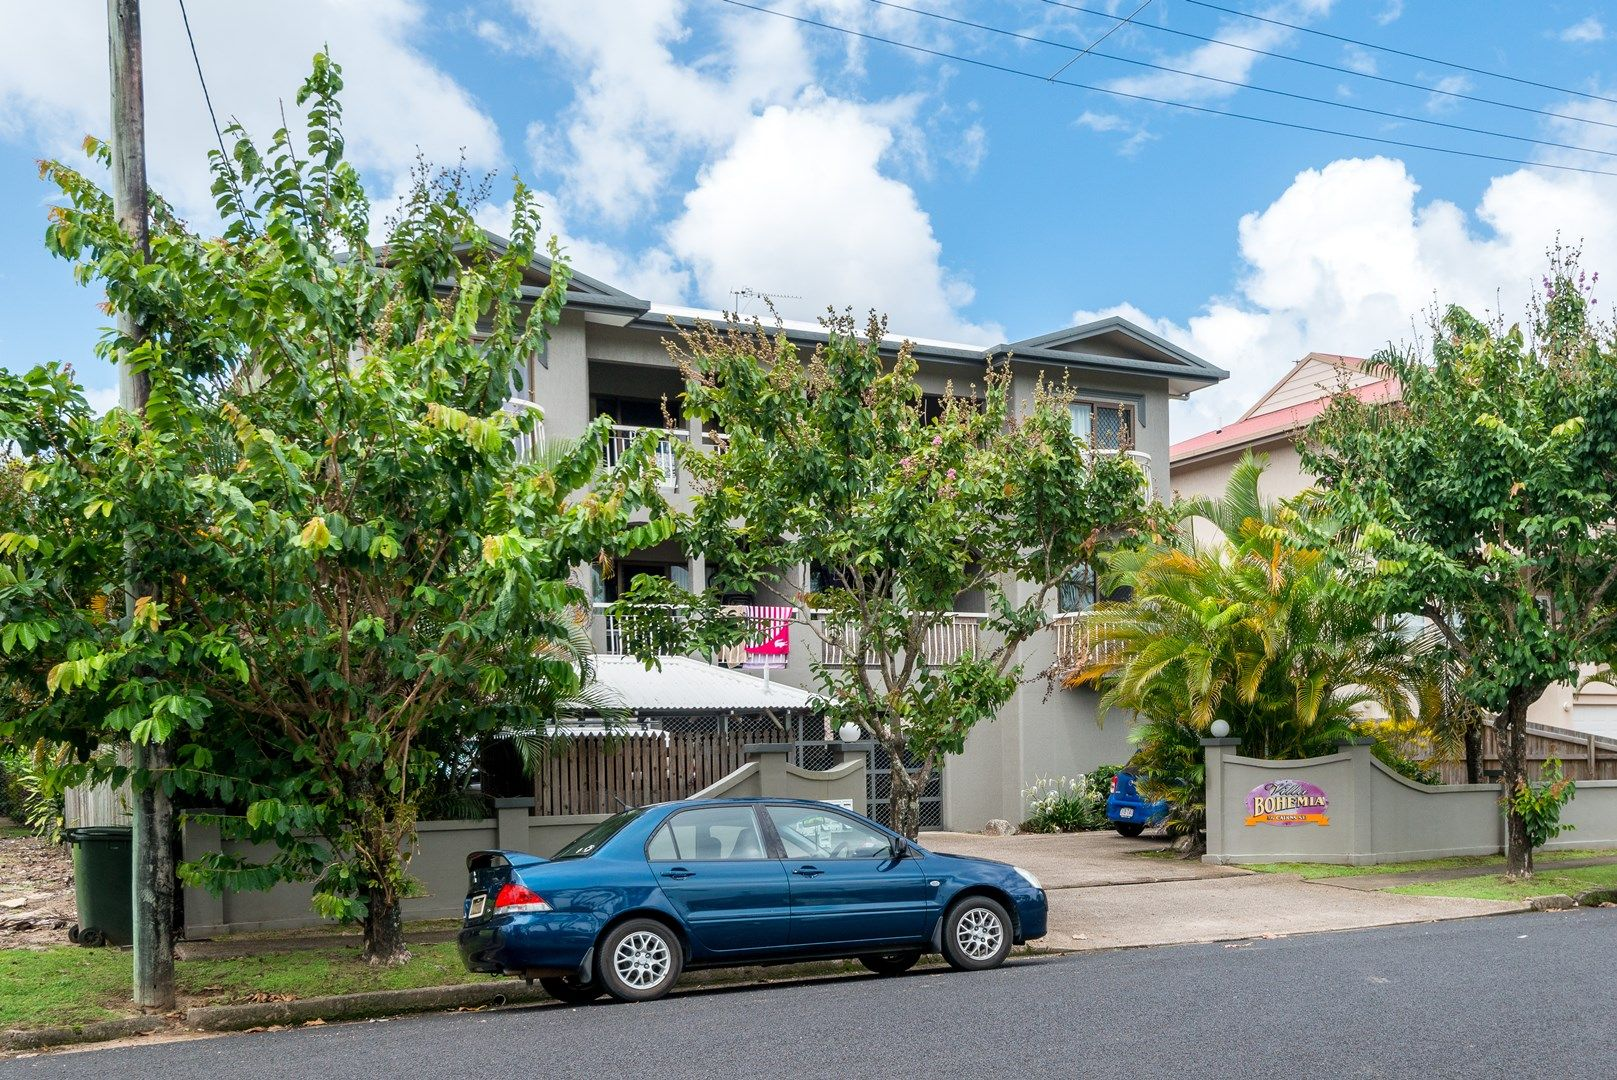 6/56 CAIRNS STREET, Cairns North QLD 4870, Image 0